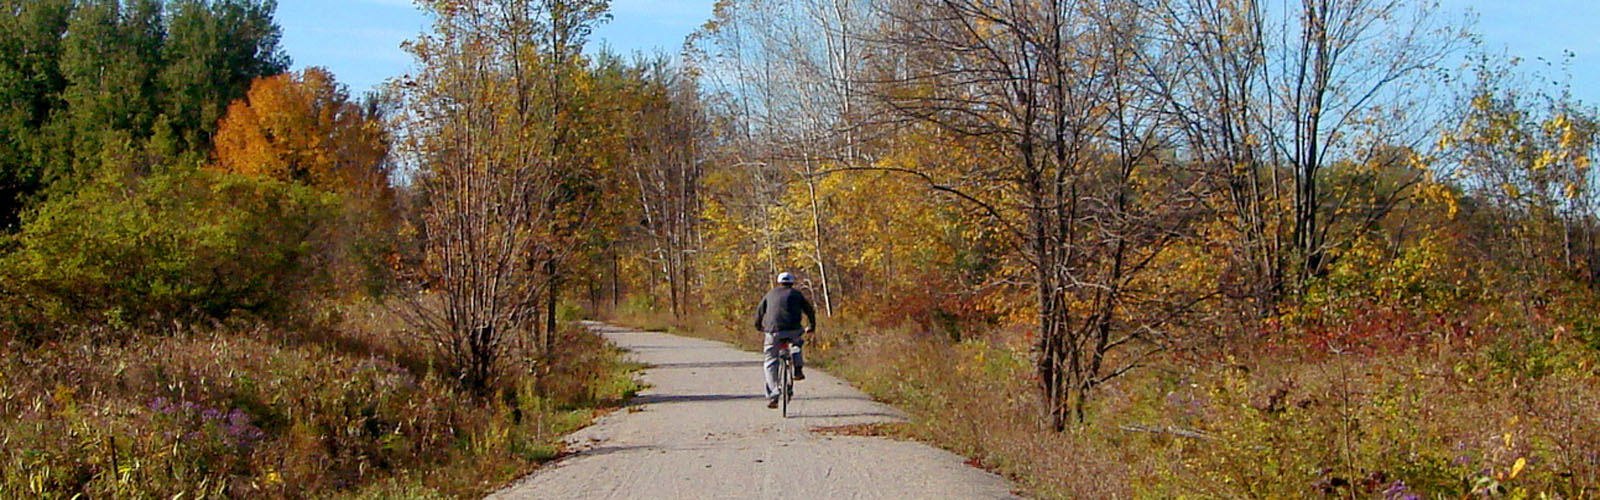 Man riding bike on trail in the fall